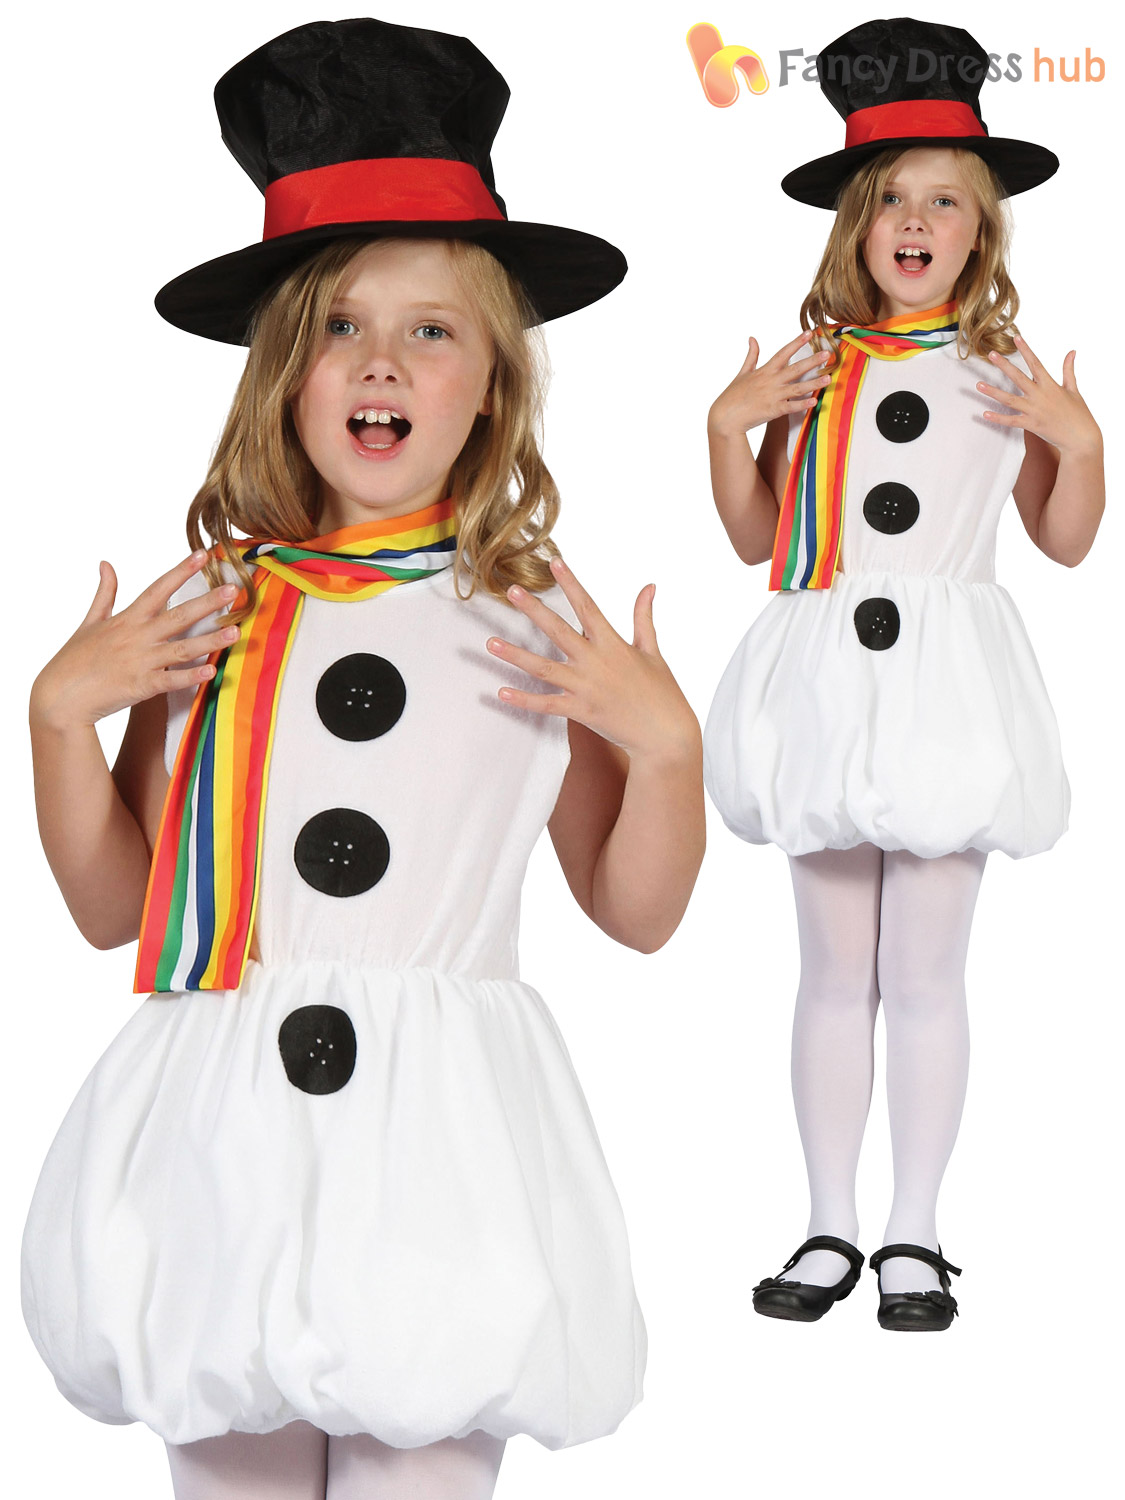 Find and save ideas about Snowman costume on Pinterest. | See more ideas about Christmas costumes, H&m christmas tree sweater and Couples ugly christmas sweater. Fun and affordable Christmas costumes for women, men, and kids. Shop for reindeer costumes, snowman costumes, and other Christmas outfits.